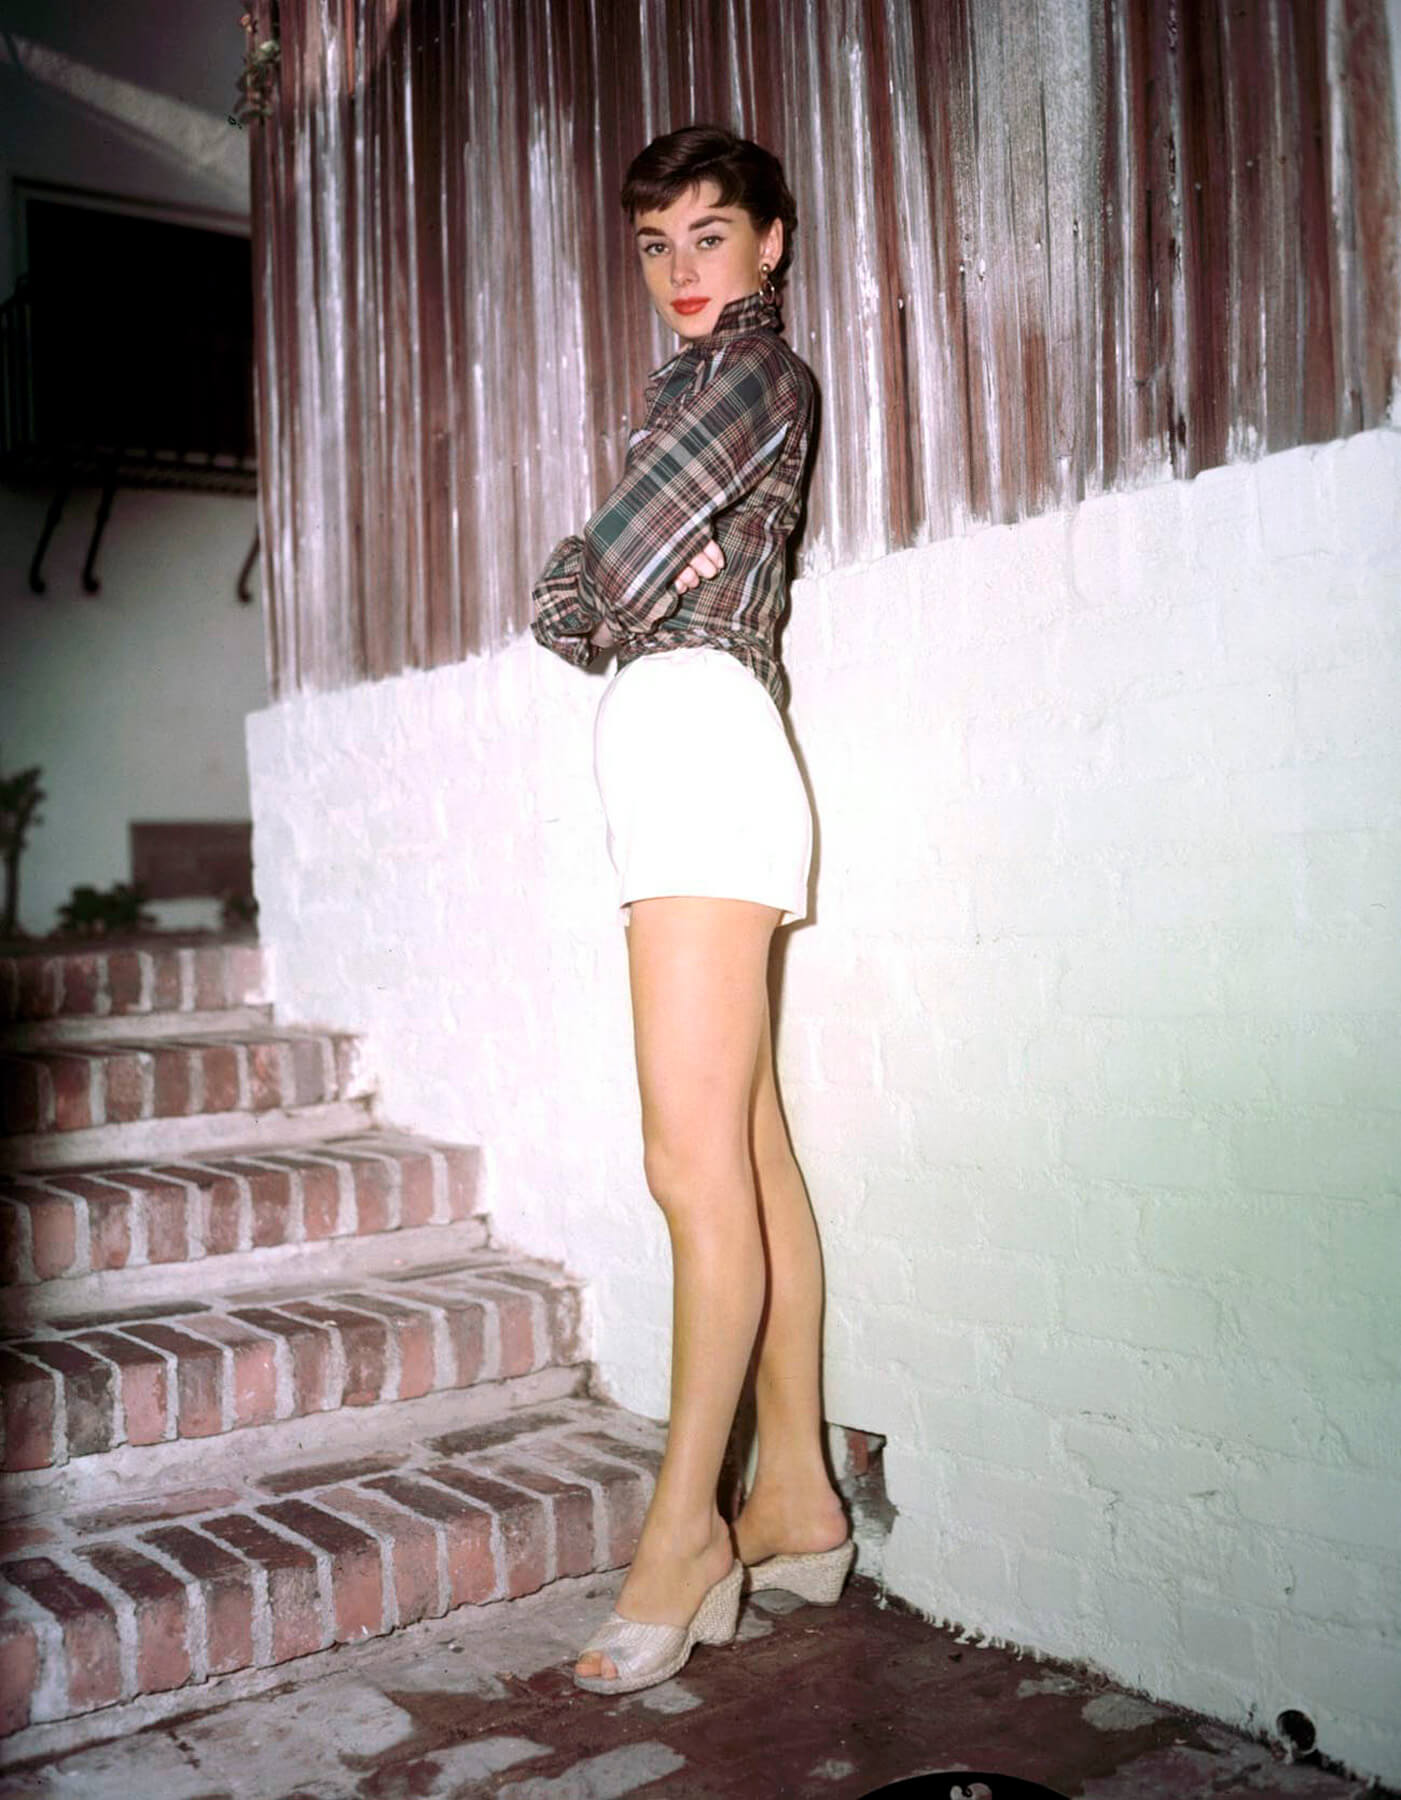 49 Hottest Audrey Hepburn Big Butt Pictures Show Why Everyone